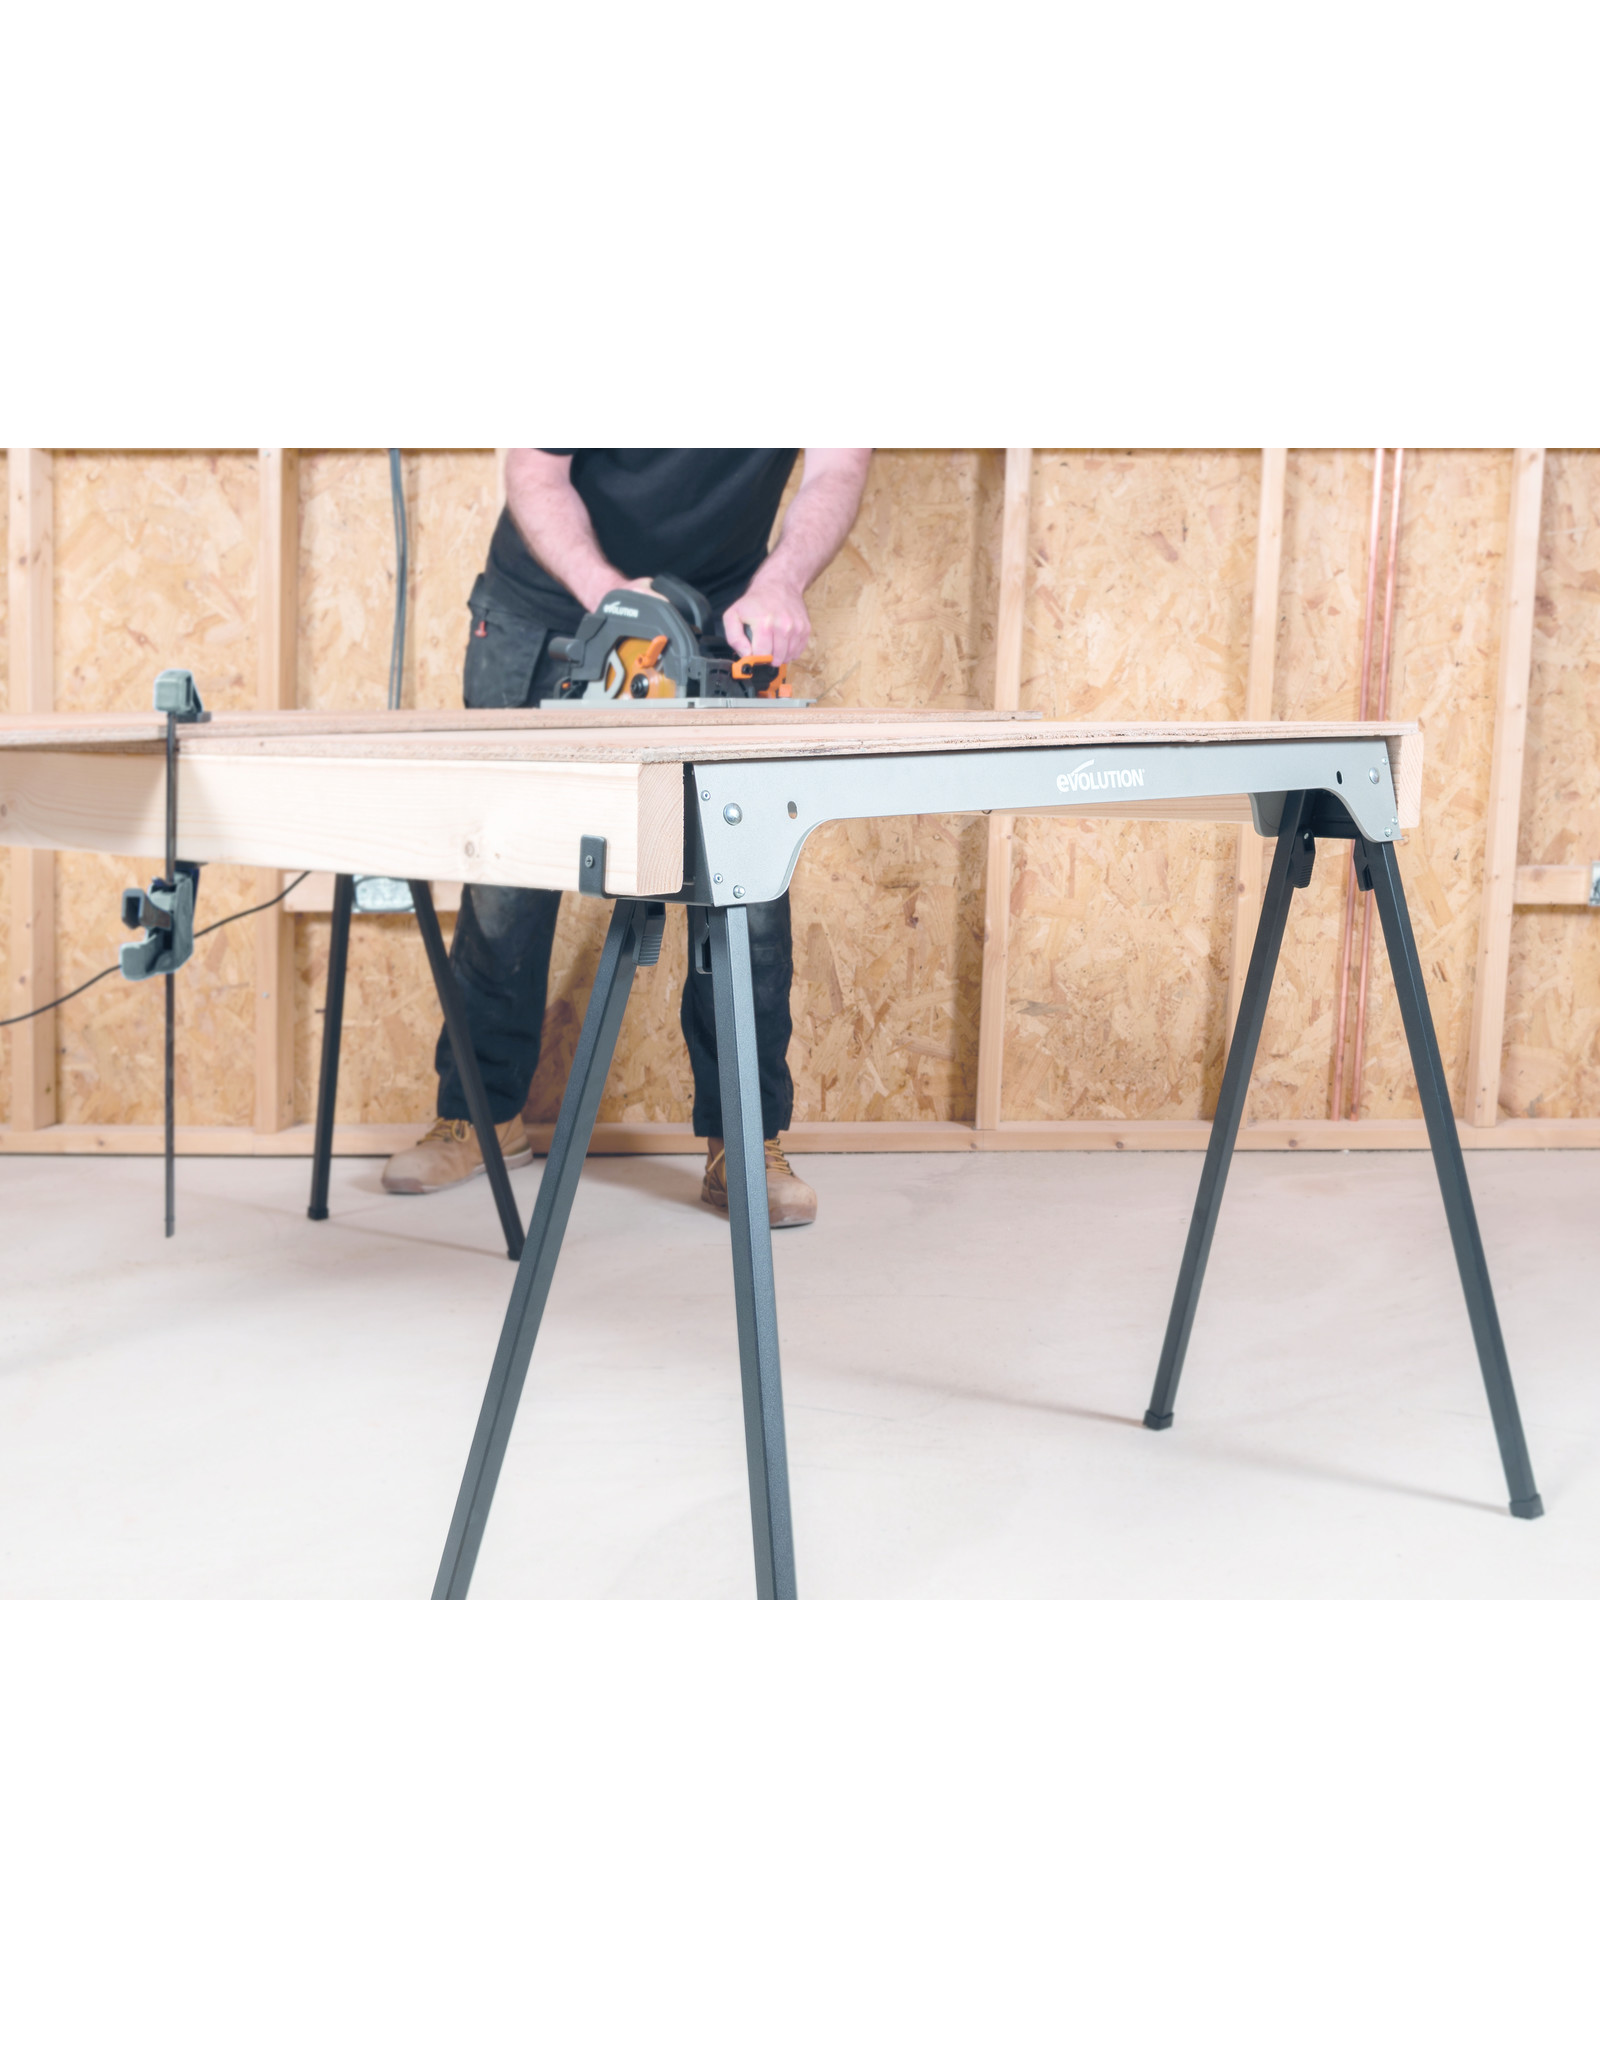 Evolution Power Tools Build Line ZAAGSTANDAARD MET OPVOUWBARE POTEN - SAW HORSE